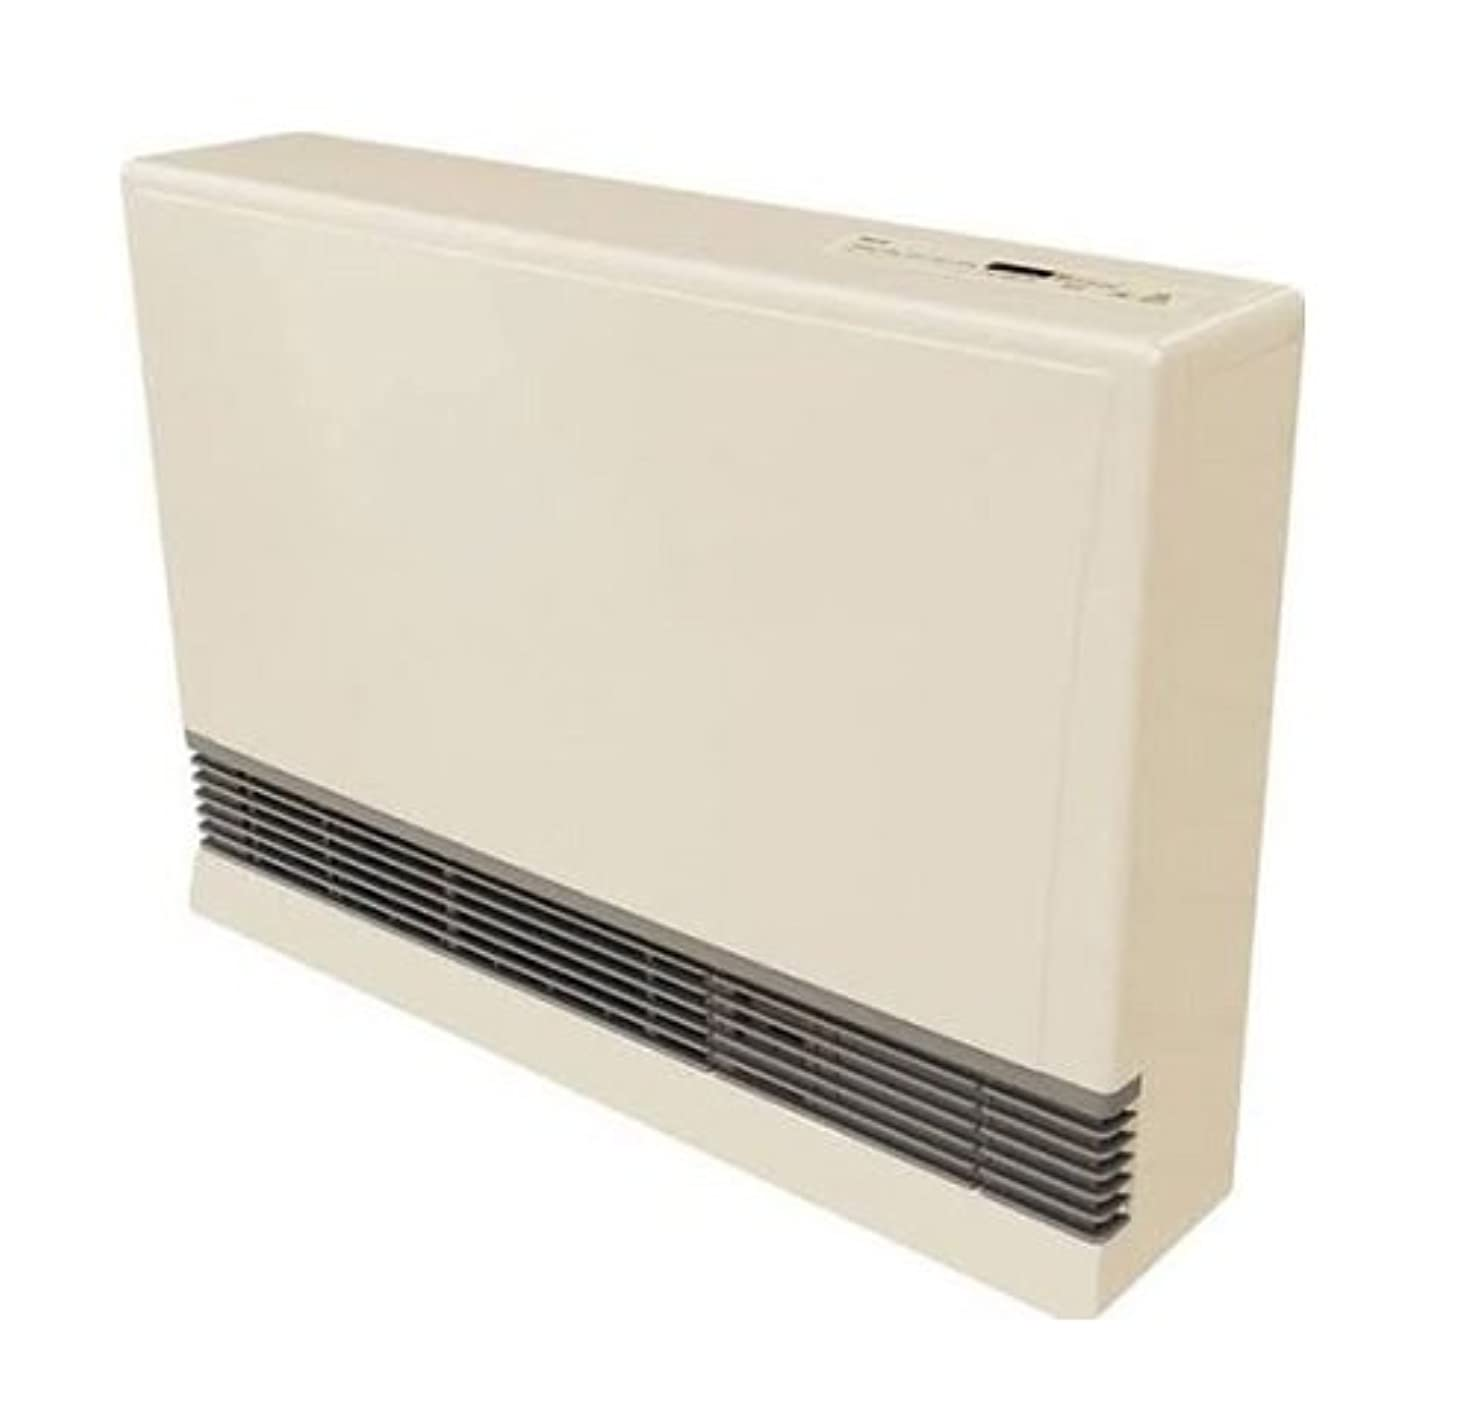 り会社実験をするRinnai EX38CTLP Direct Vent Space Heater - Liquid Propane BEIGE, 141[並行輸入]